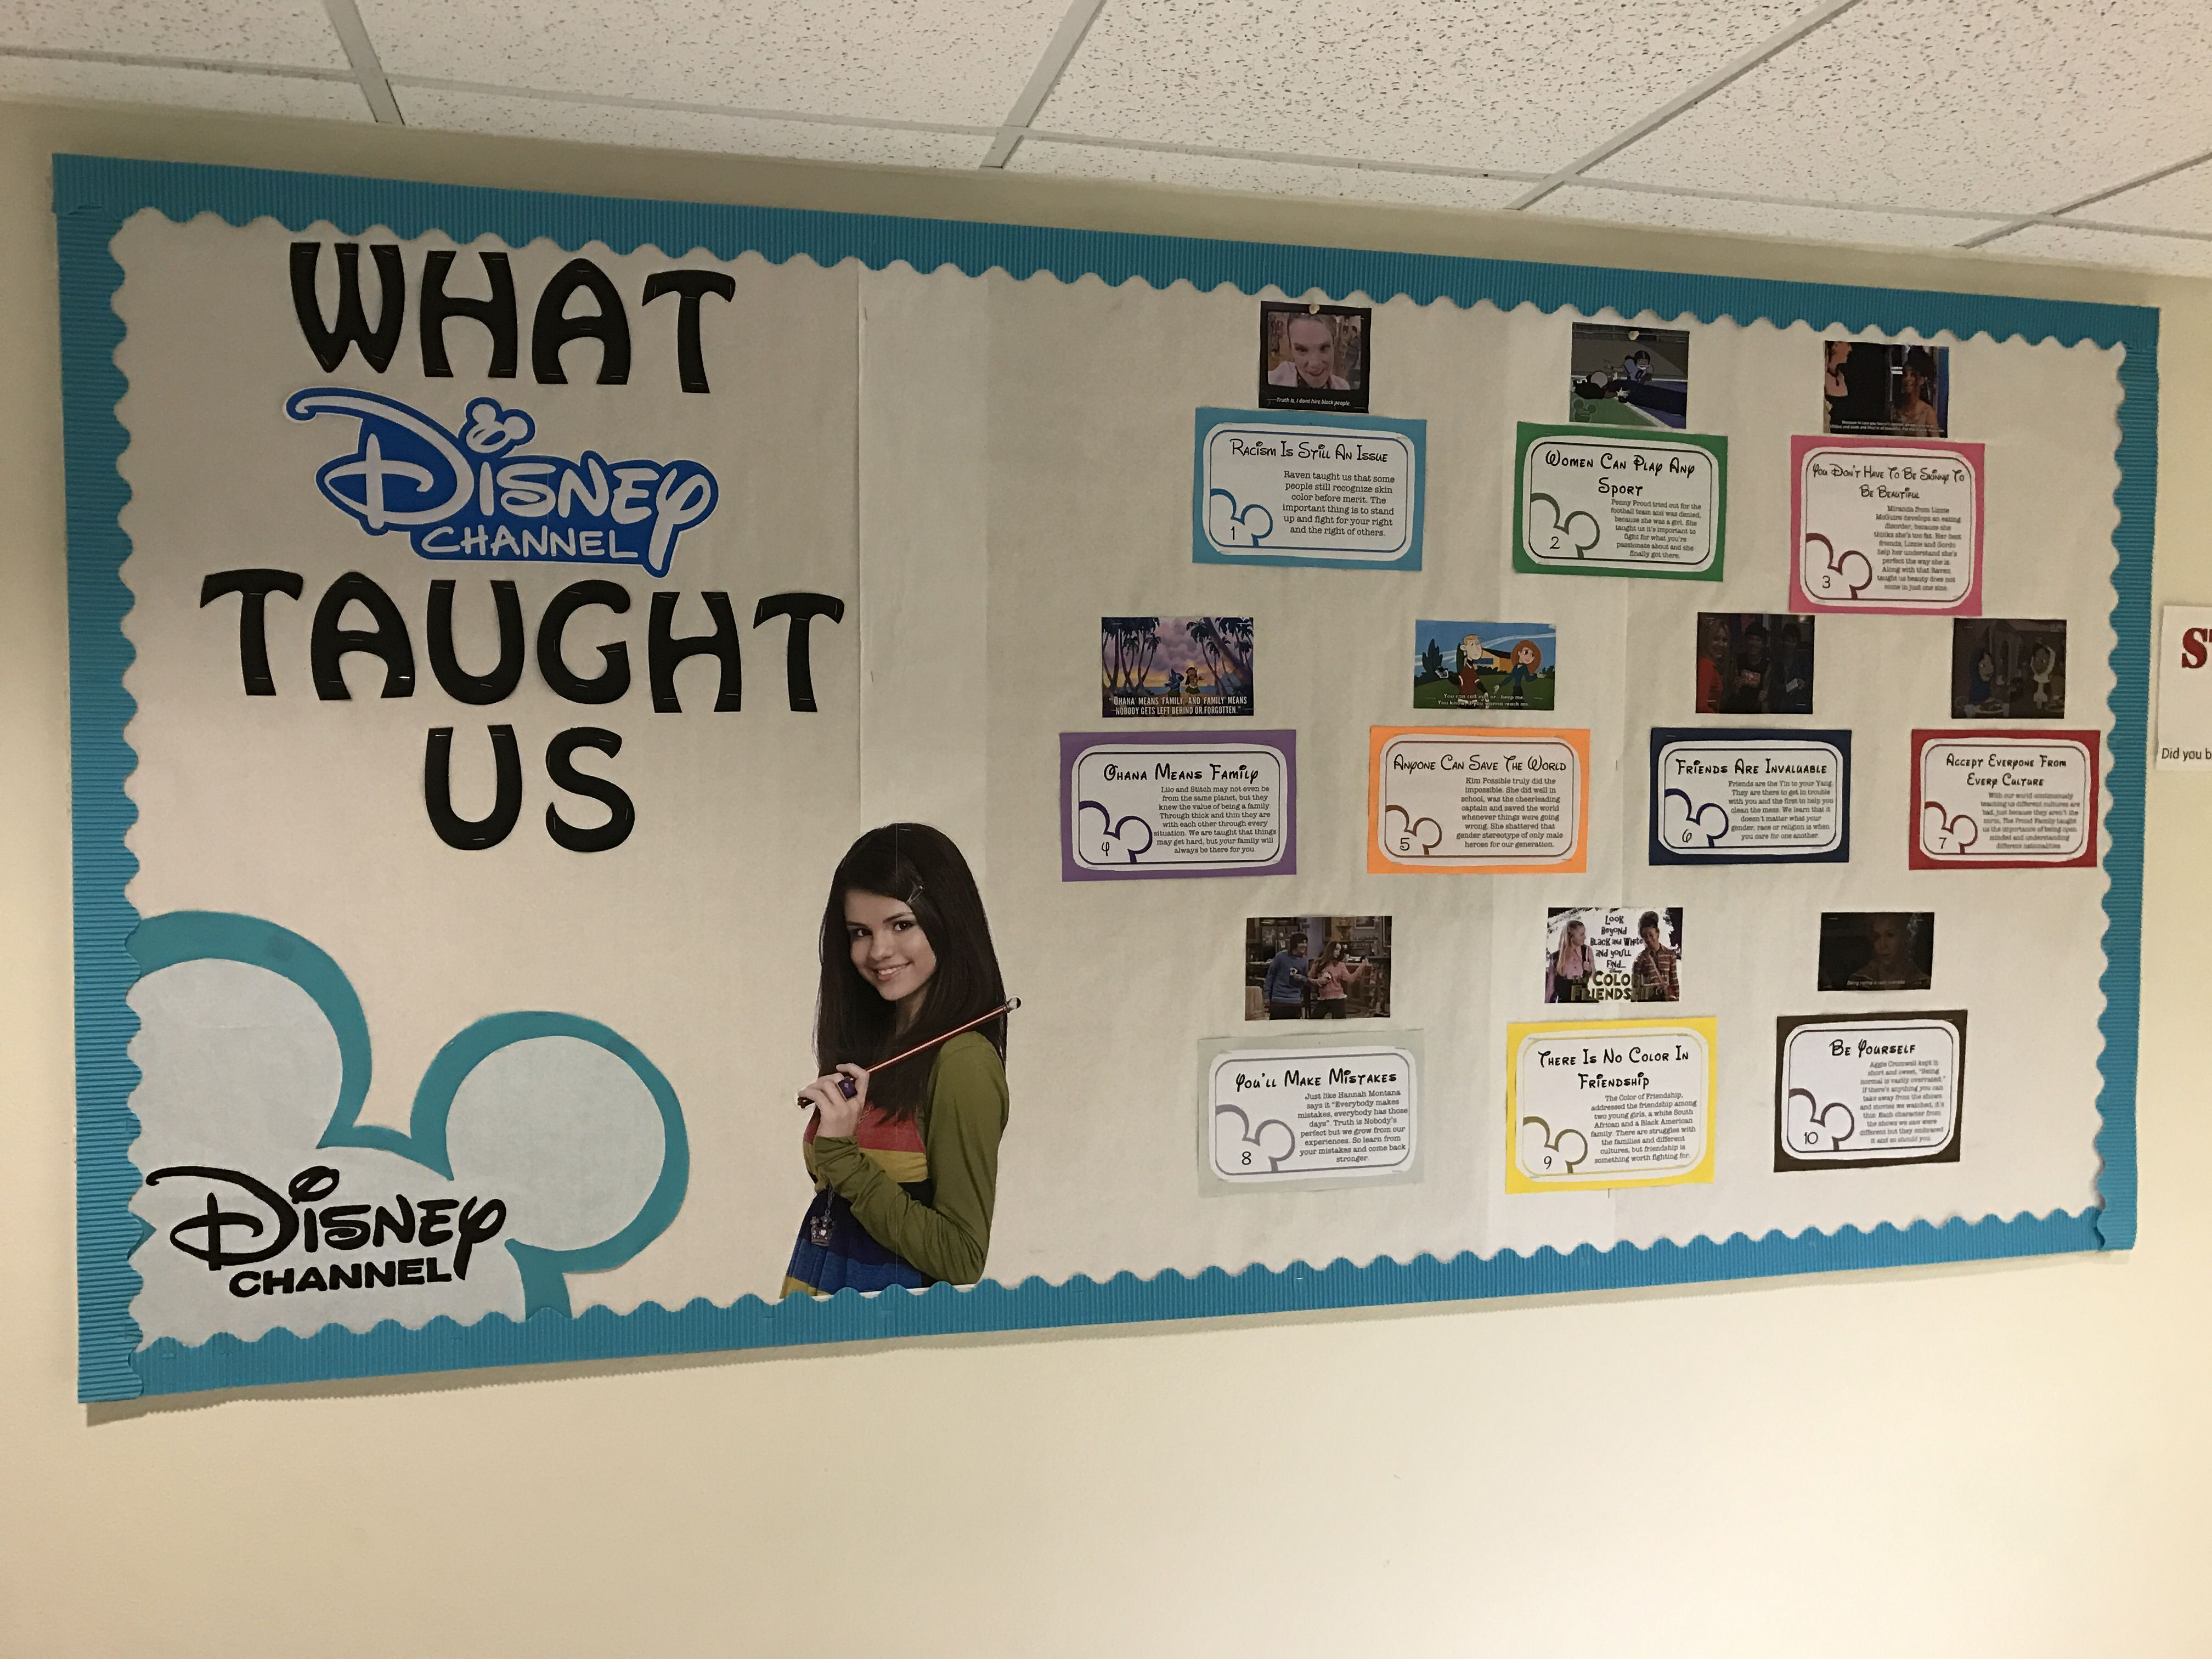 What Disney Channel Taught Me RA bulletin board #rabulletinboards What Disney Channel Taught Me RA bulletin board #rabulletinboards What Disney Channel Taught Me RA bulletin board #rabulletinboards What Disney Channel Taught Me RA bulletin board #rabulletinboards What Disney Channel Taught Me RA bulletin board #rabulletinboards What Disney Channel Taught Me RA bulletin board #rabulletinboards What Disney Channel Taught Me RA bulletin board #rabulletinboards What Disney Channel Taught Me RA bulle #rabulletinboards